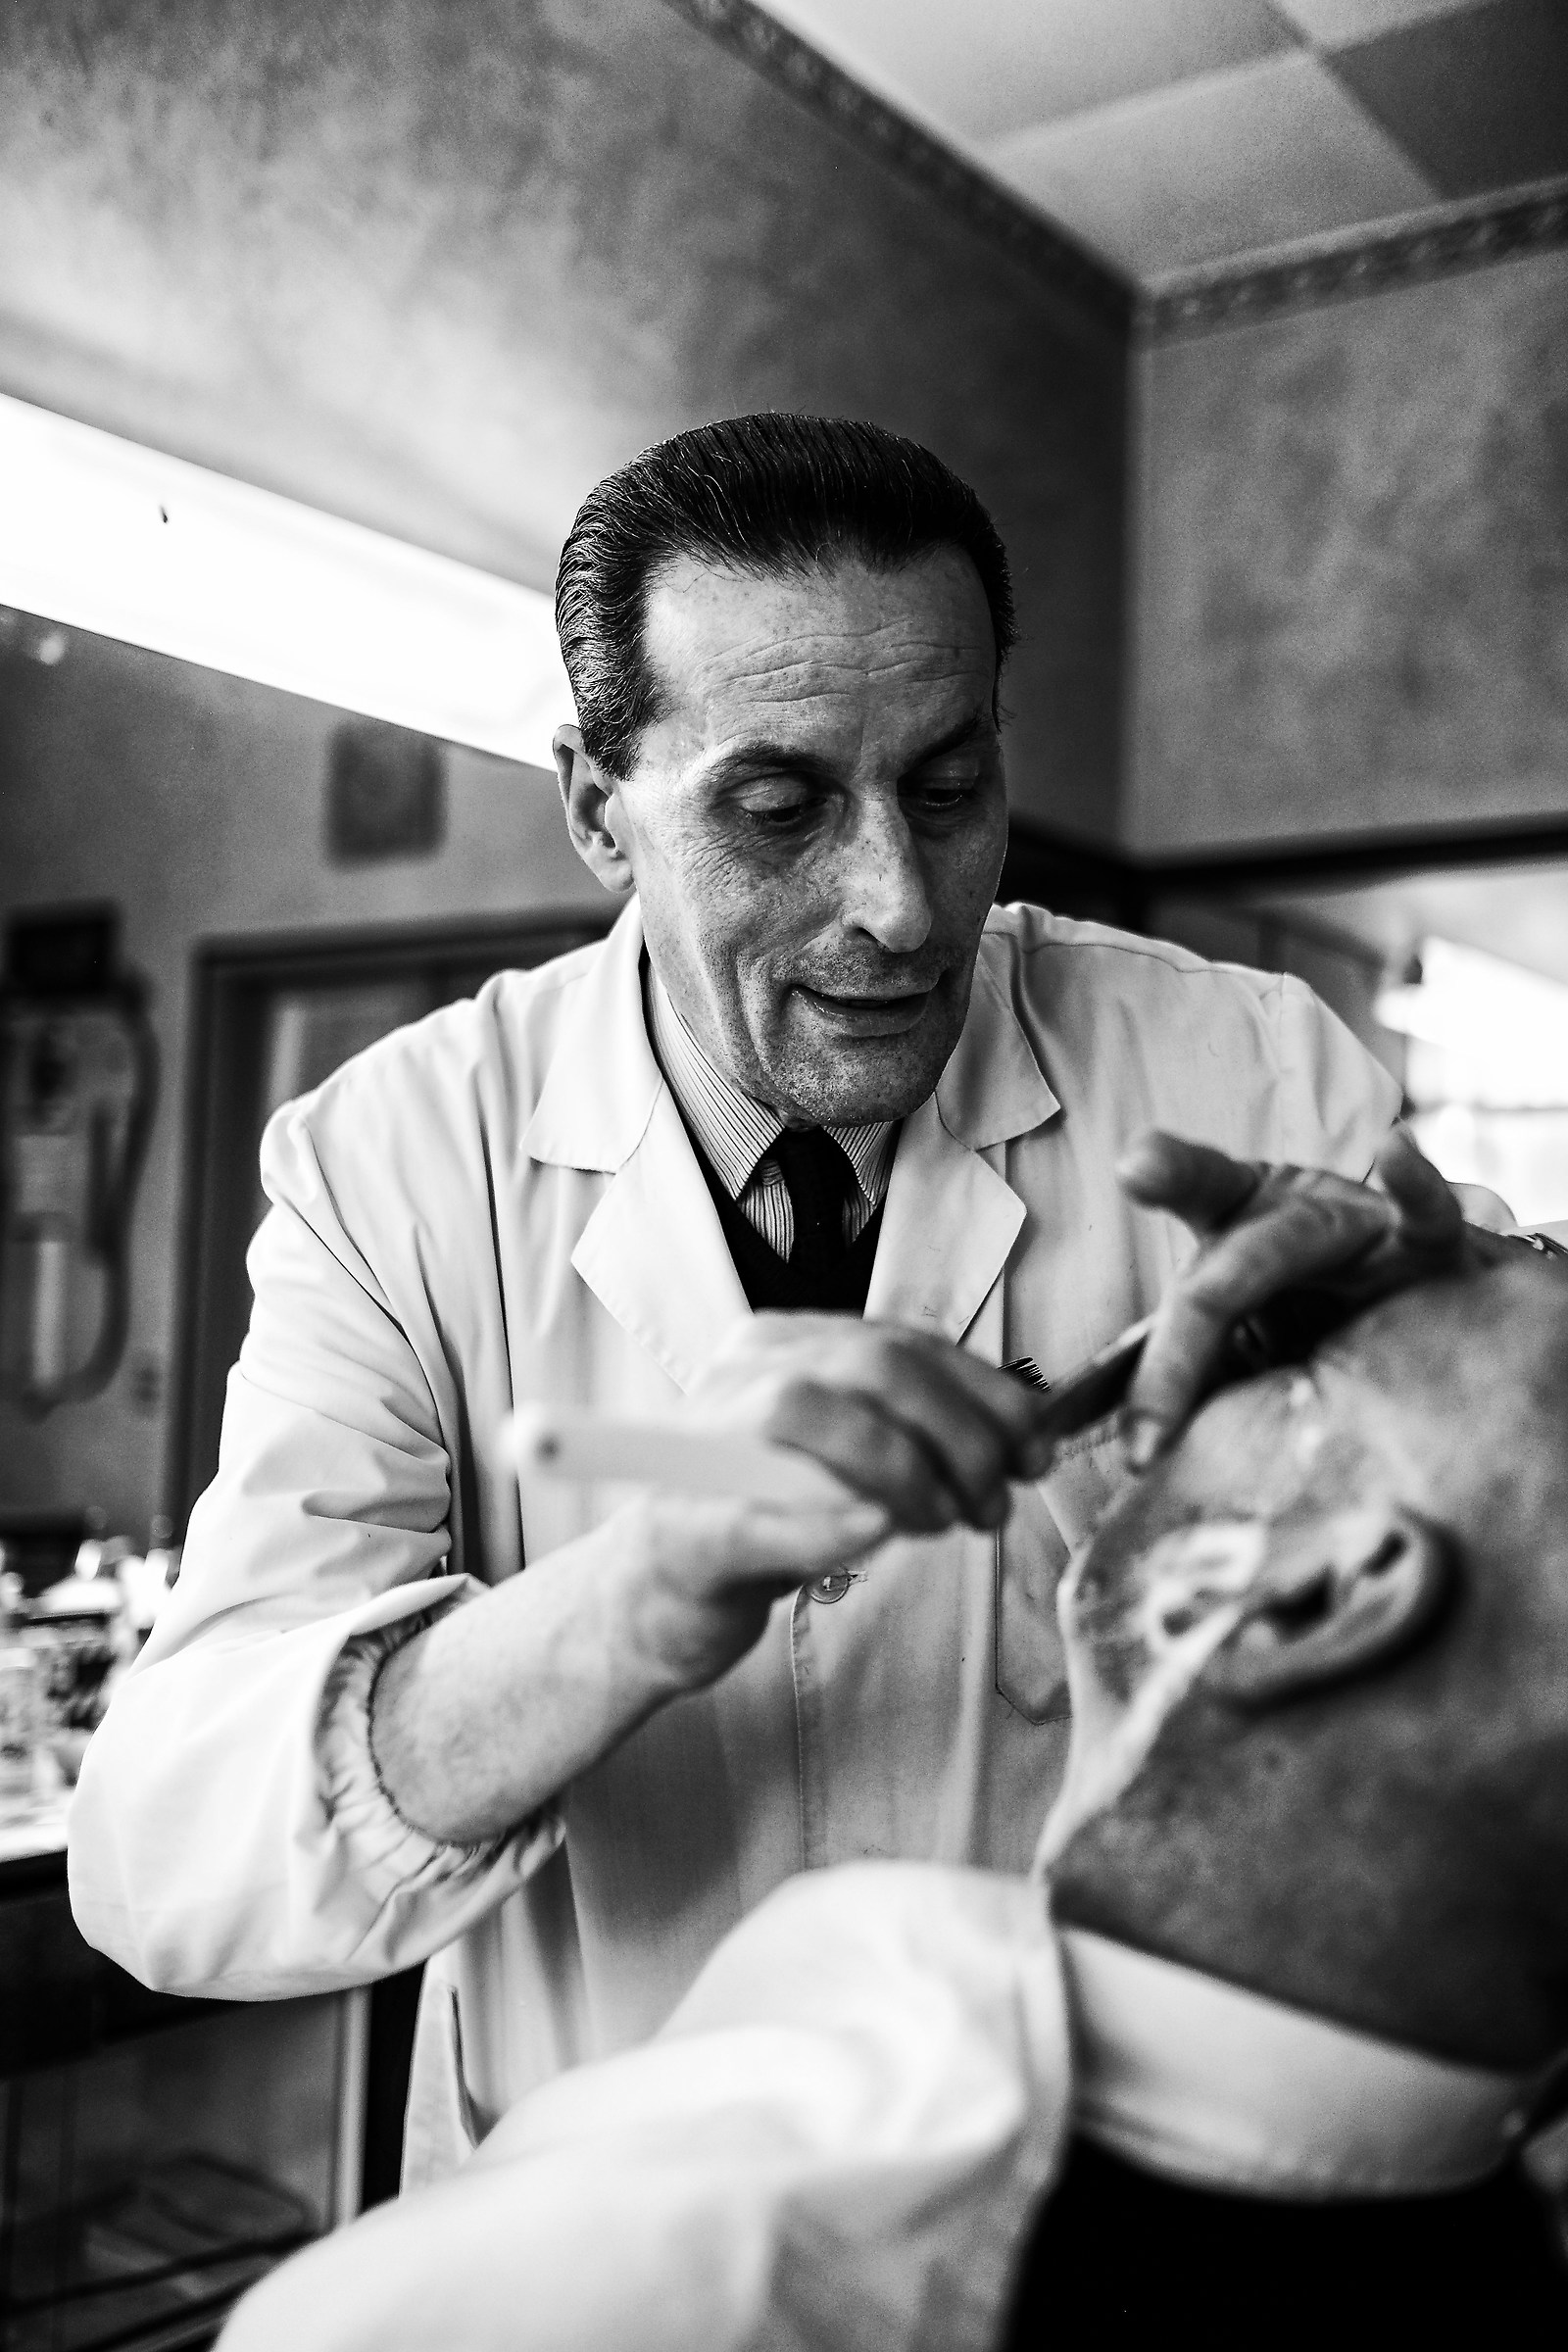 the barber...